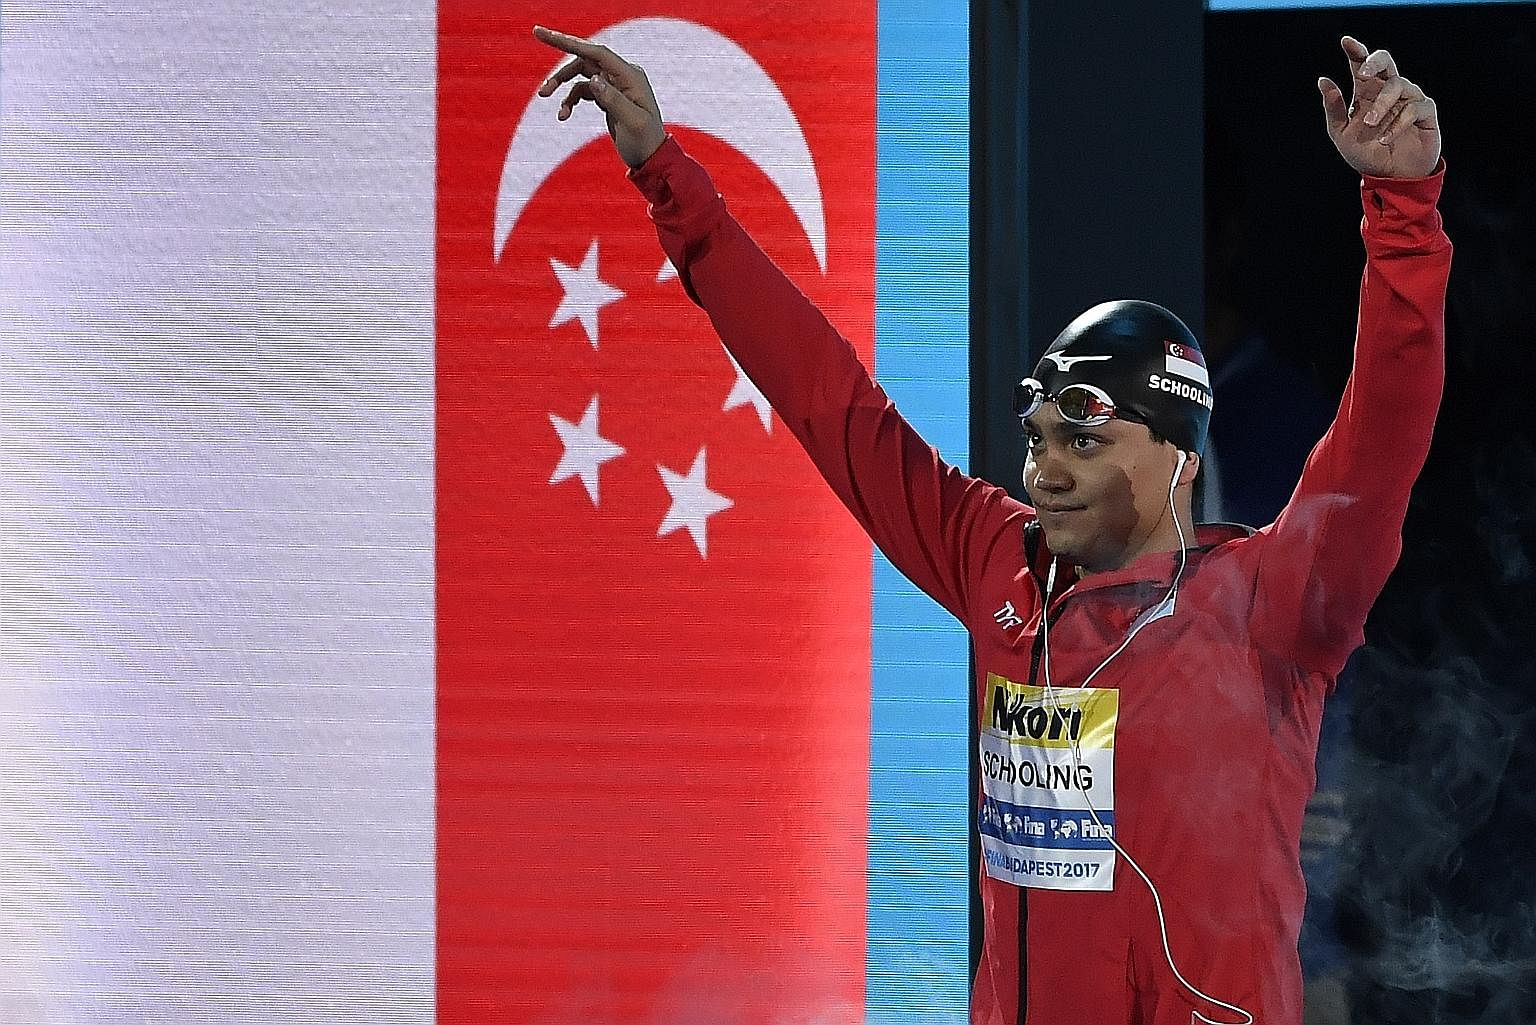 Joseph Schooling before the men's 100m butterfly final in Budapest, Hungary last year, when he clocked 50.83sec to finish joint-third with Briton James Guy, behind winner Caeleb Dressel.